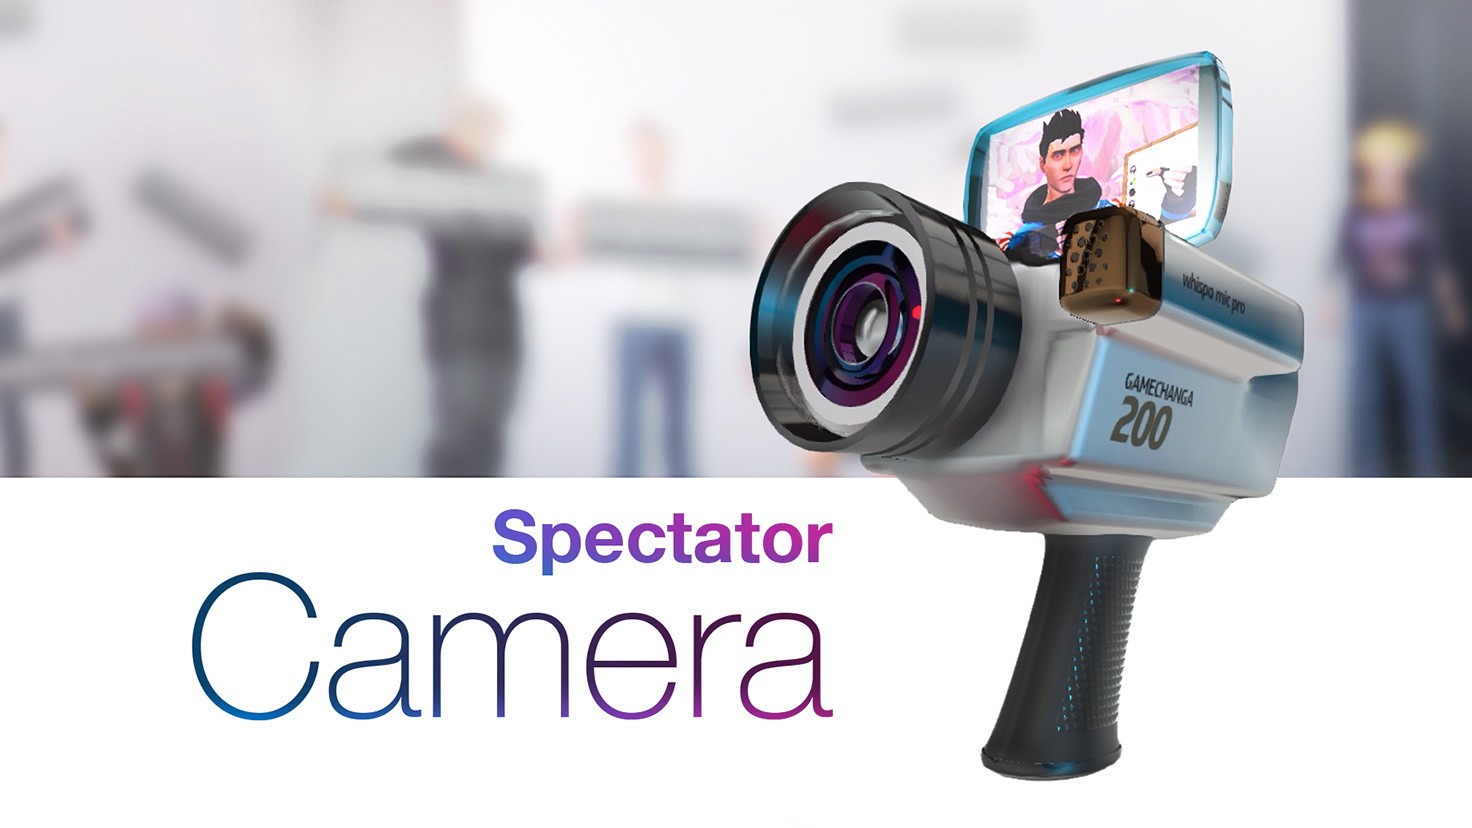 Spectator Camera Challenge— Your Chance to Win $1500